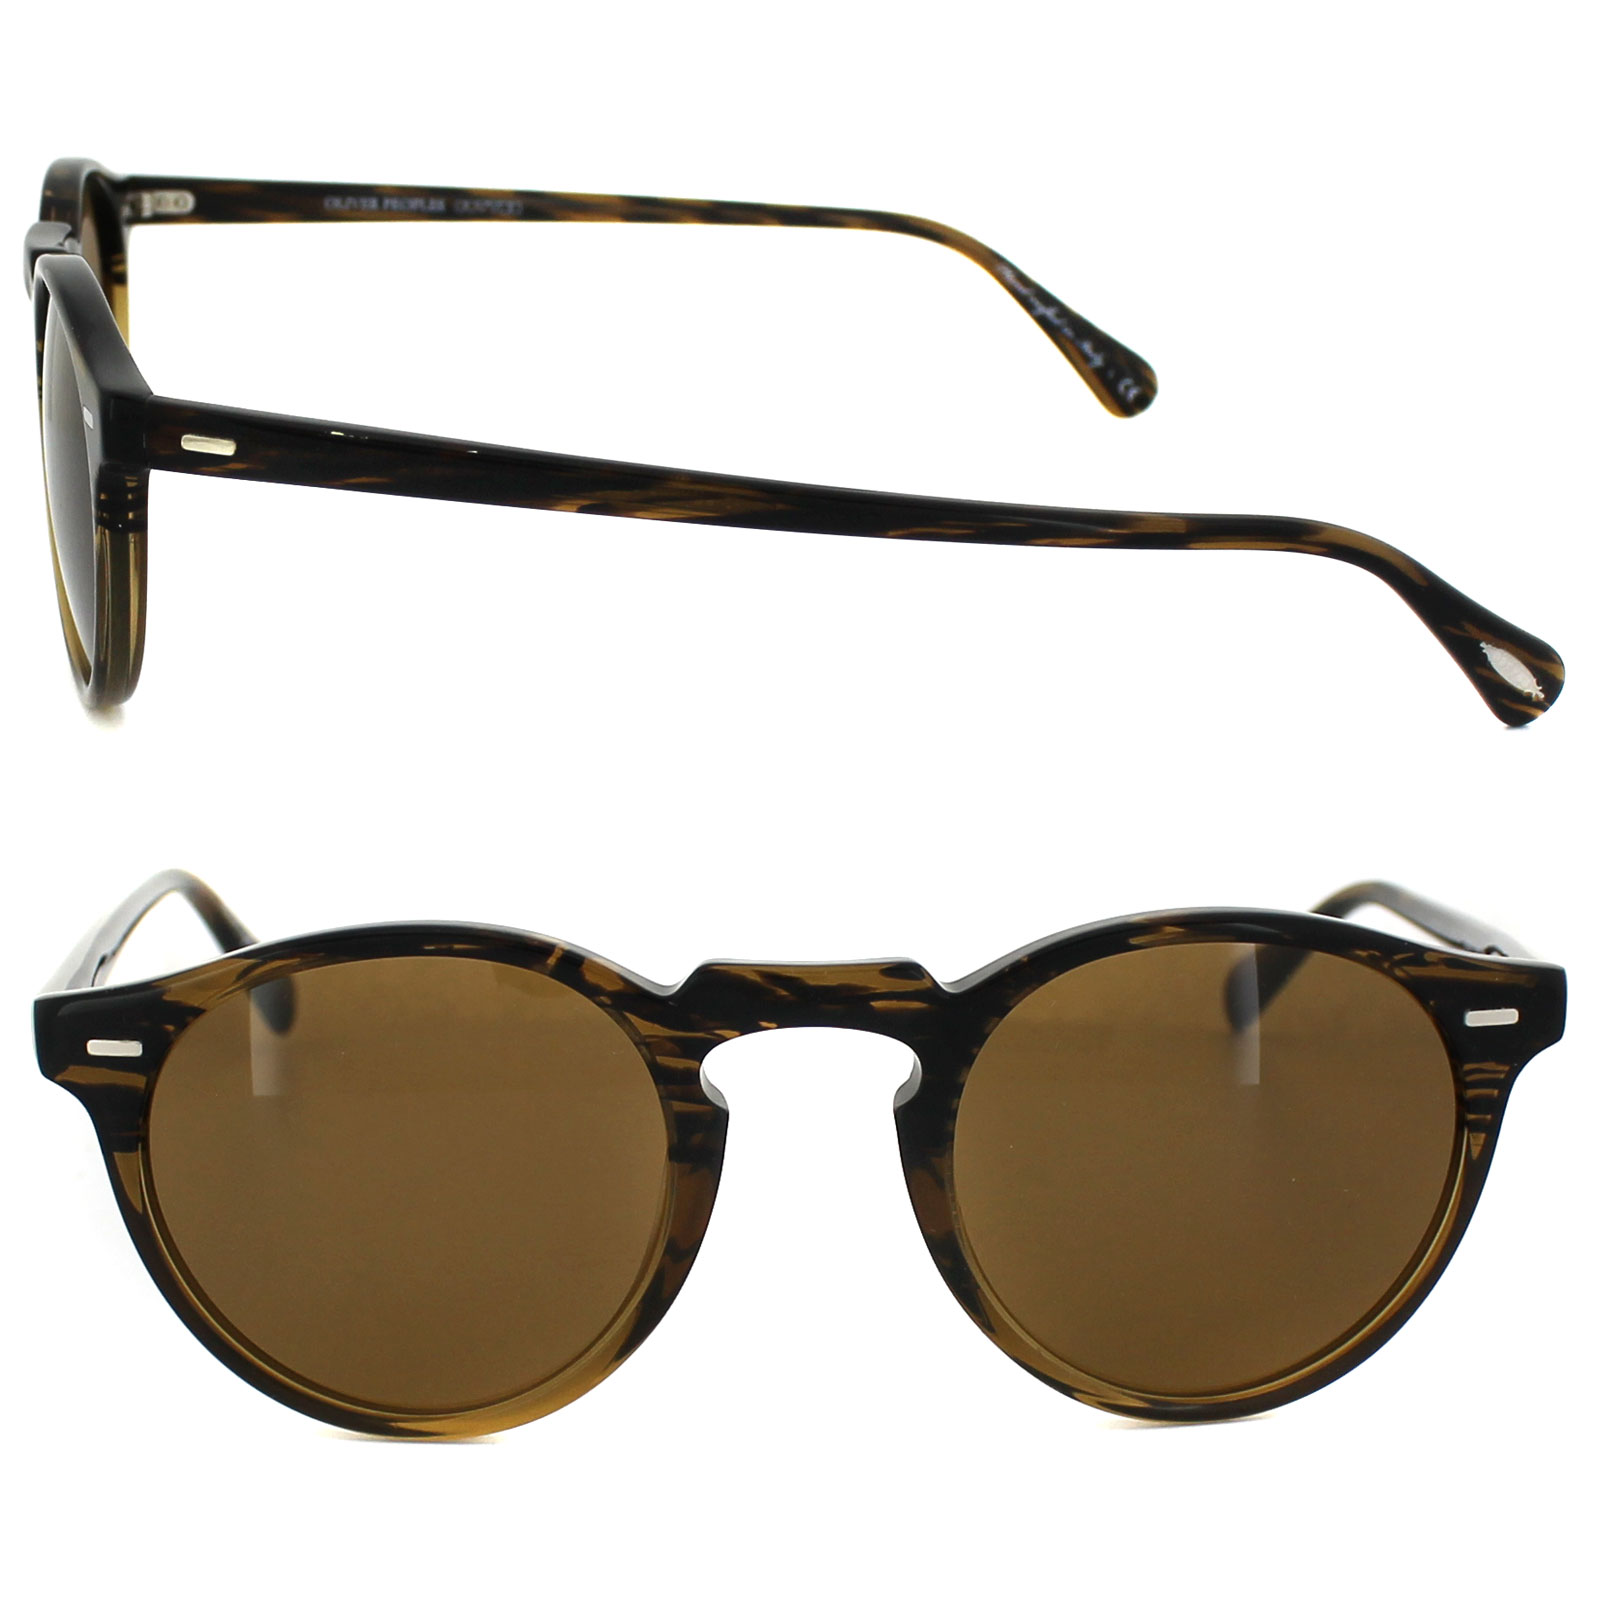 Cheap Oliver Peoples Gregory Peck 5217 Sunglasses Discounted Sunglasses